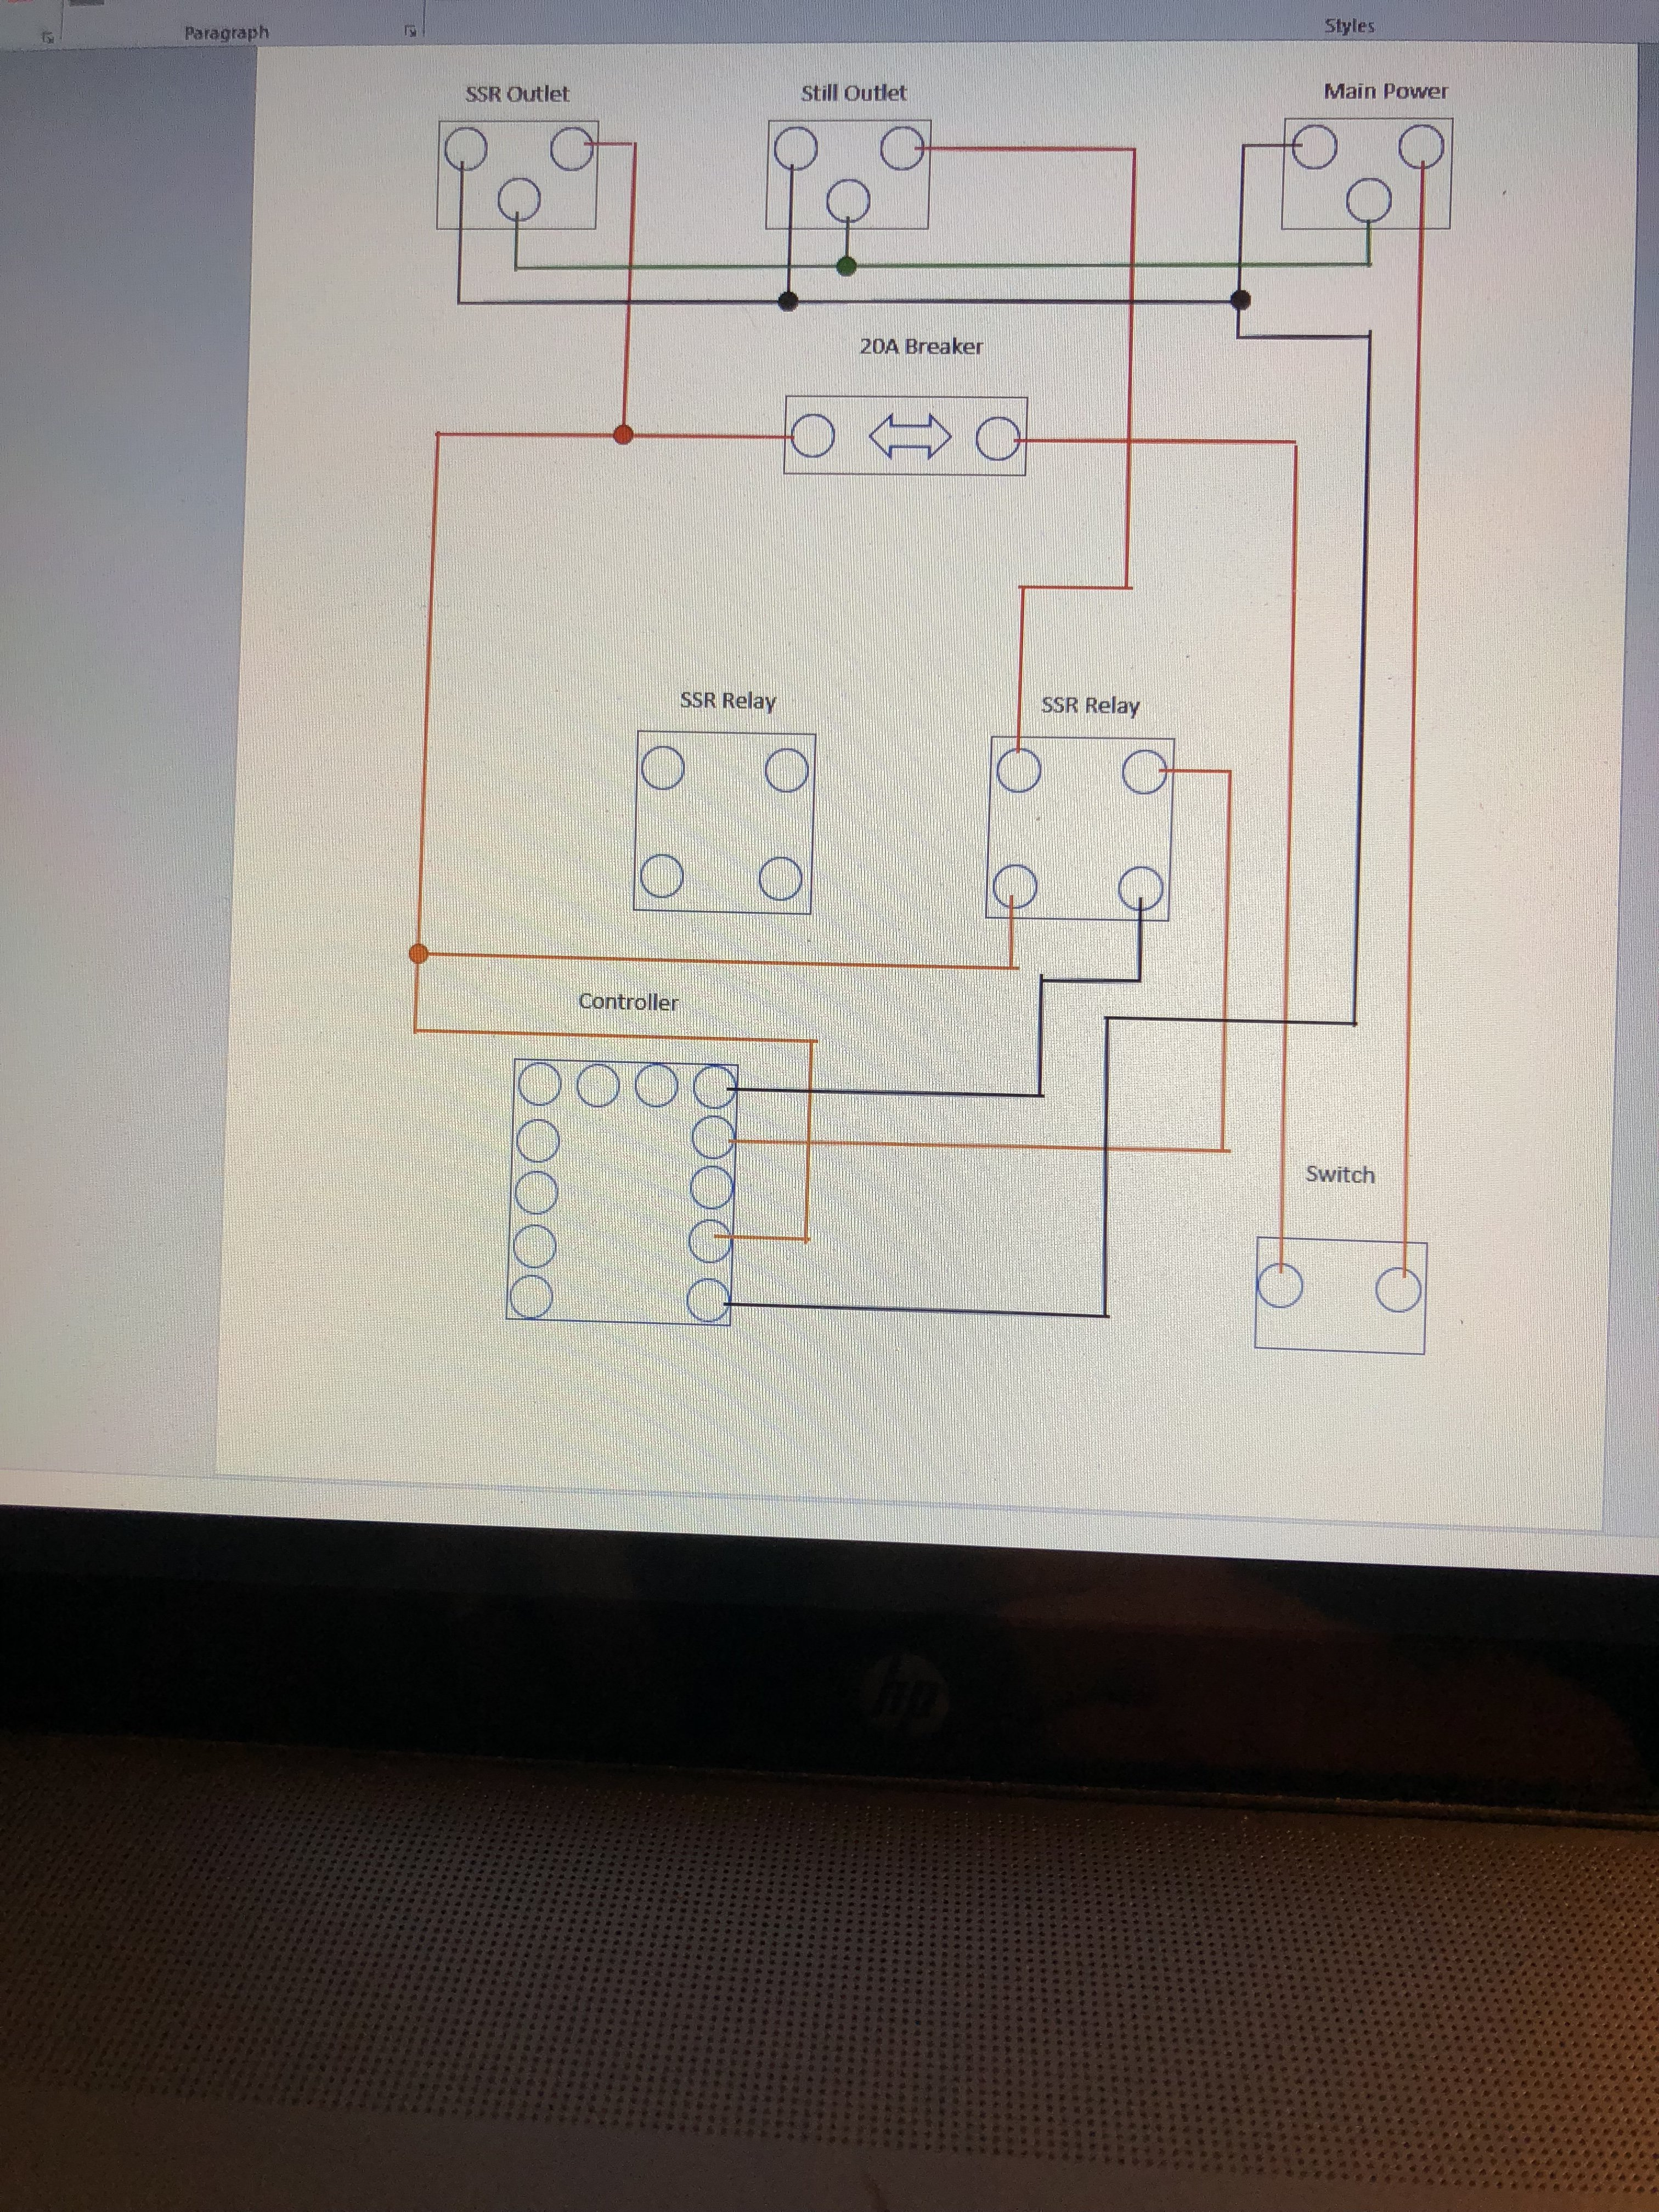 wiring question in a ssr to outlet running a 110v heater ...